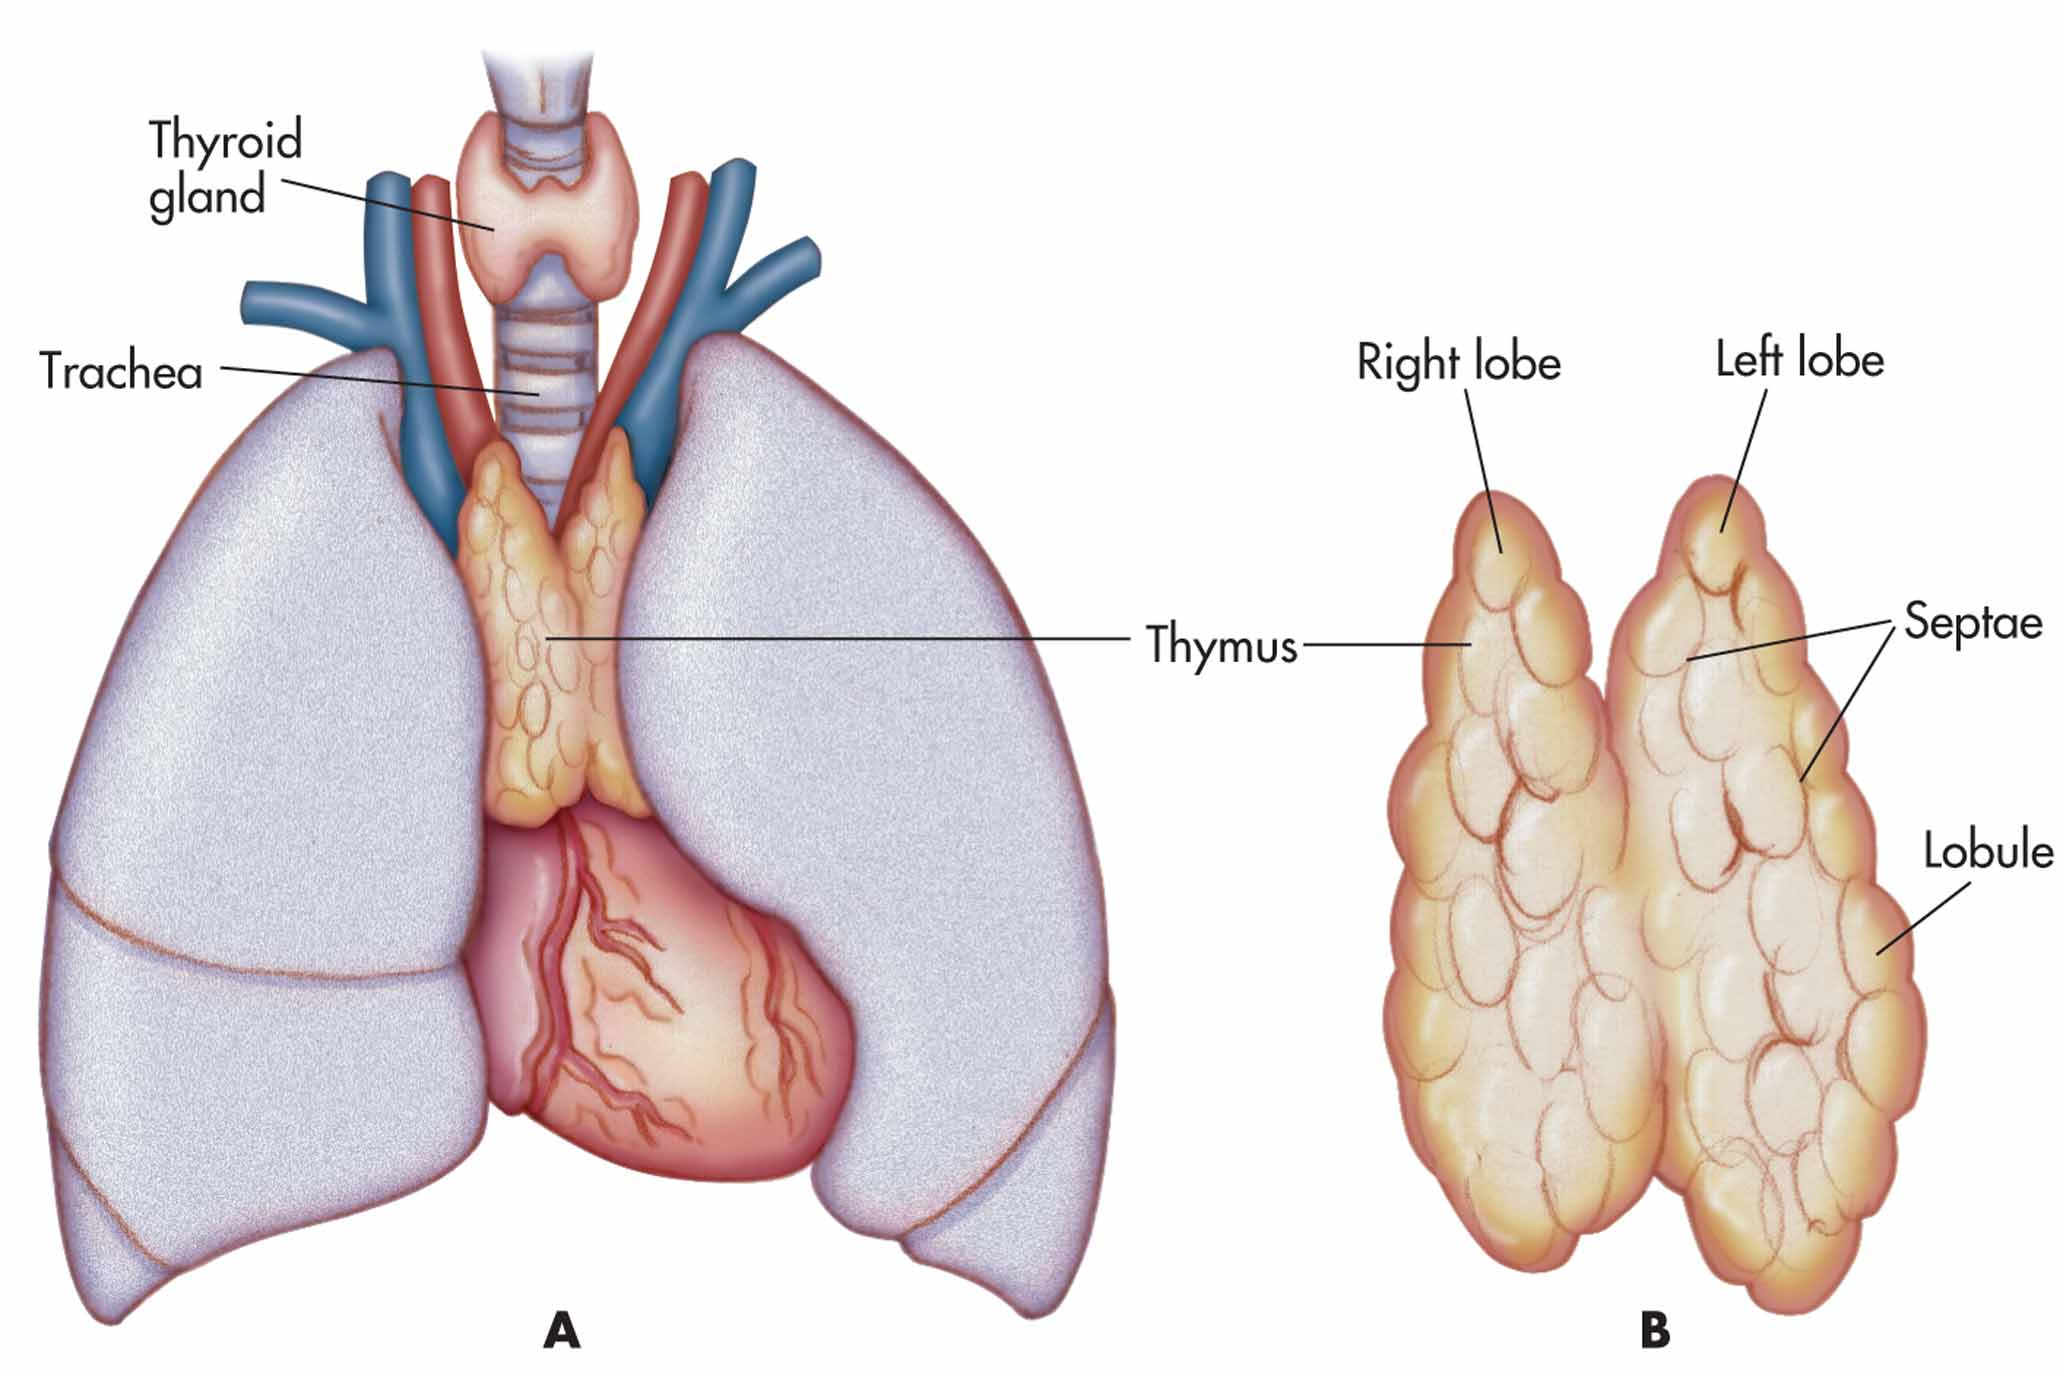 Endocrine System Anatomy Of The Endocrine System